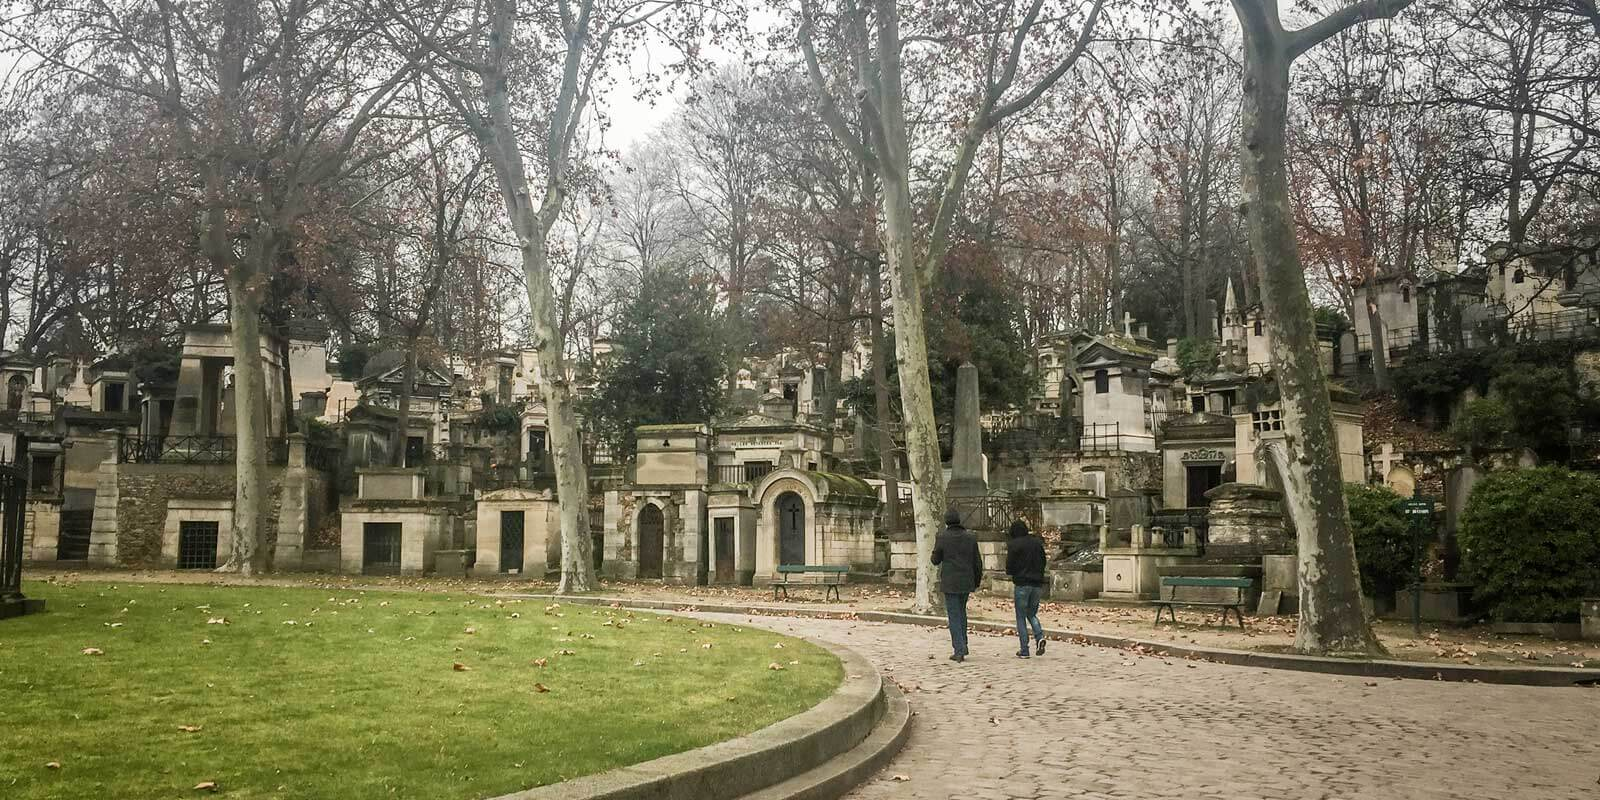 Two people walking through the hauntingly beautiful Père Lachaise cemetery in Paris on a gloomy day.